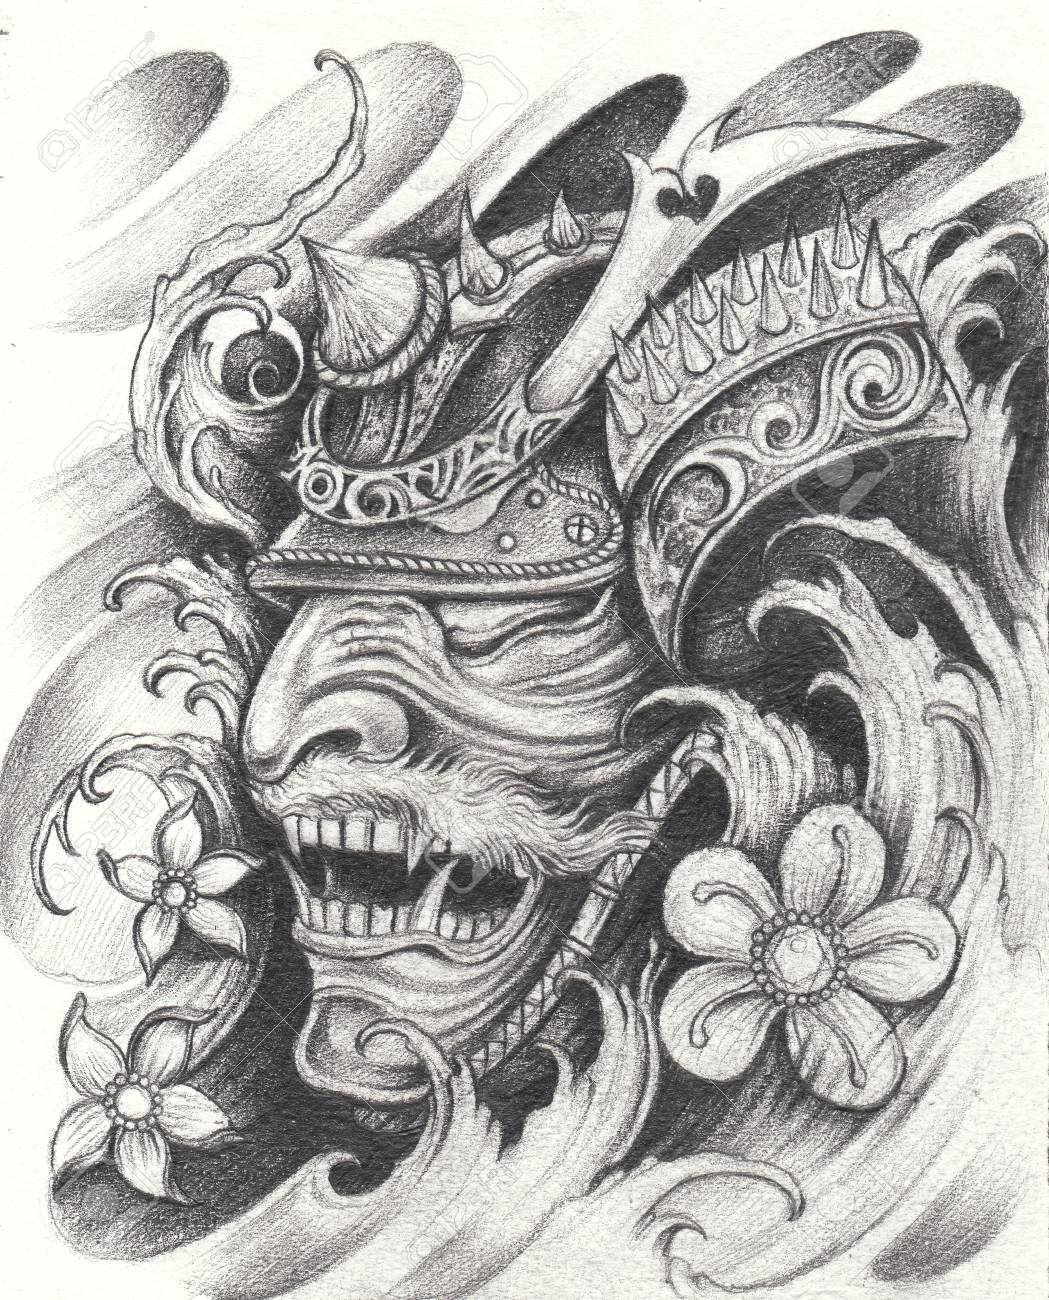 Samurai Warrior Tattoo Design Hand Pencil Drawing On Paper Stock Photo Picture And Royalty Free Image Image 109767756